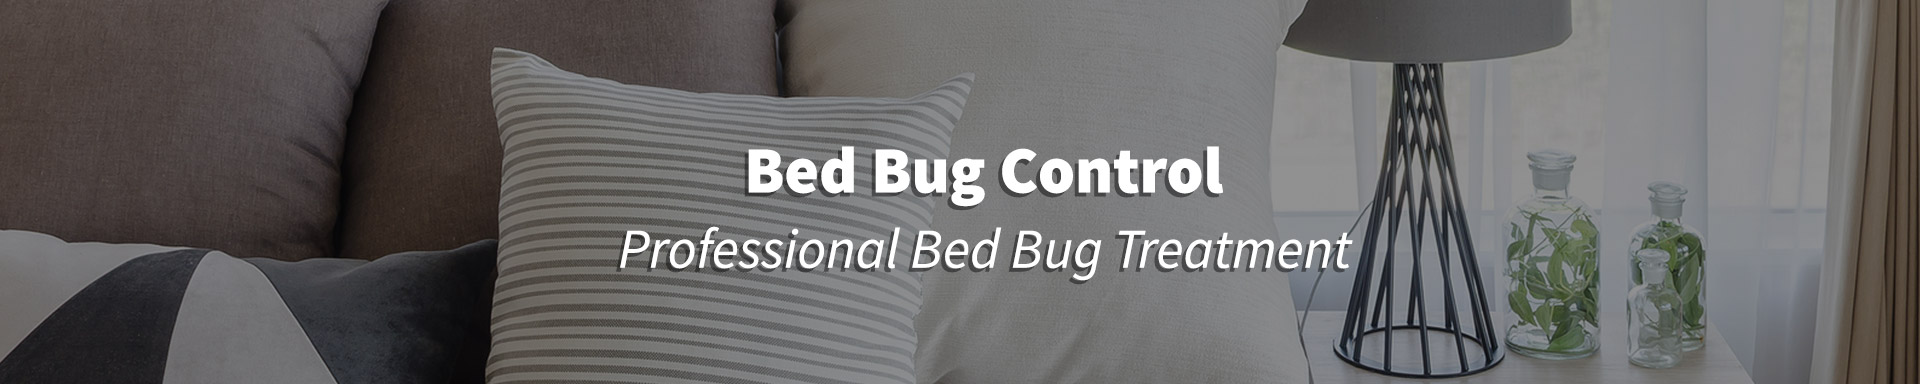 Bed Bug Treatment in Cornelia, GA, Anderson, SC & Greenville, SC